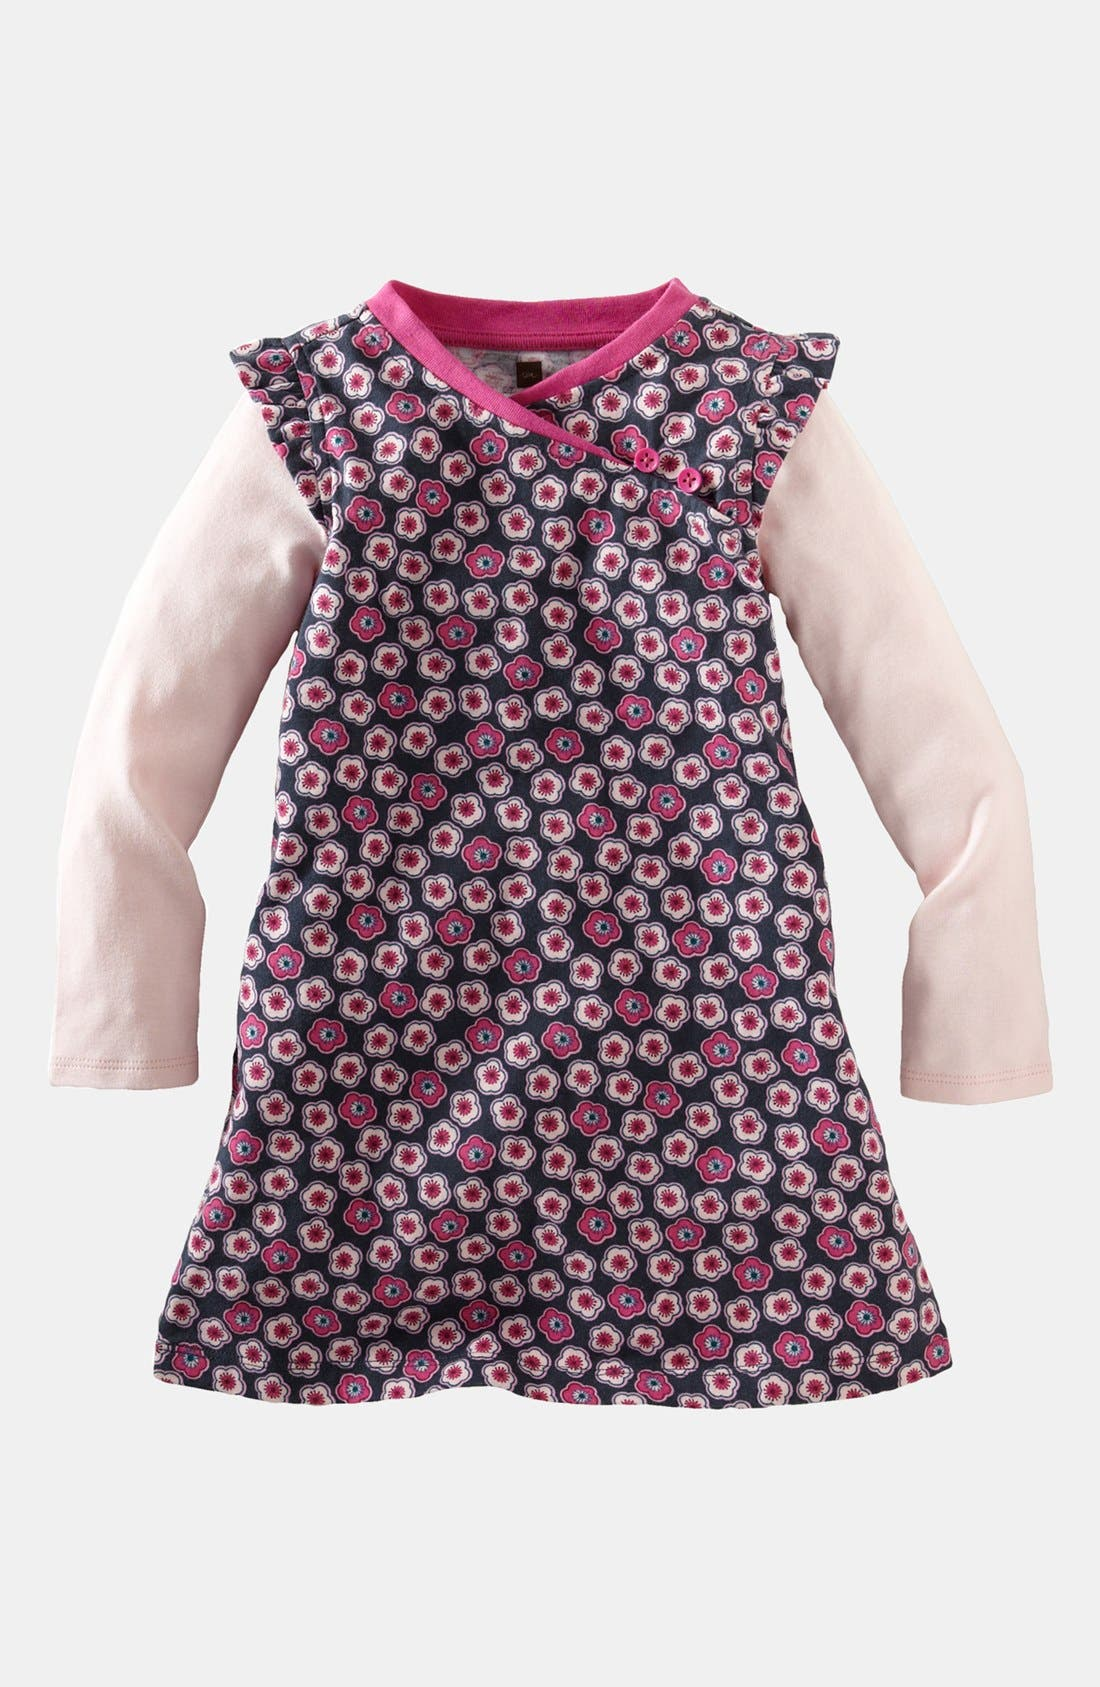 Main Image - Tea Collection 'Cherry Blossom' Dress (Baby Girls)